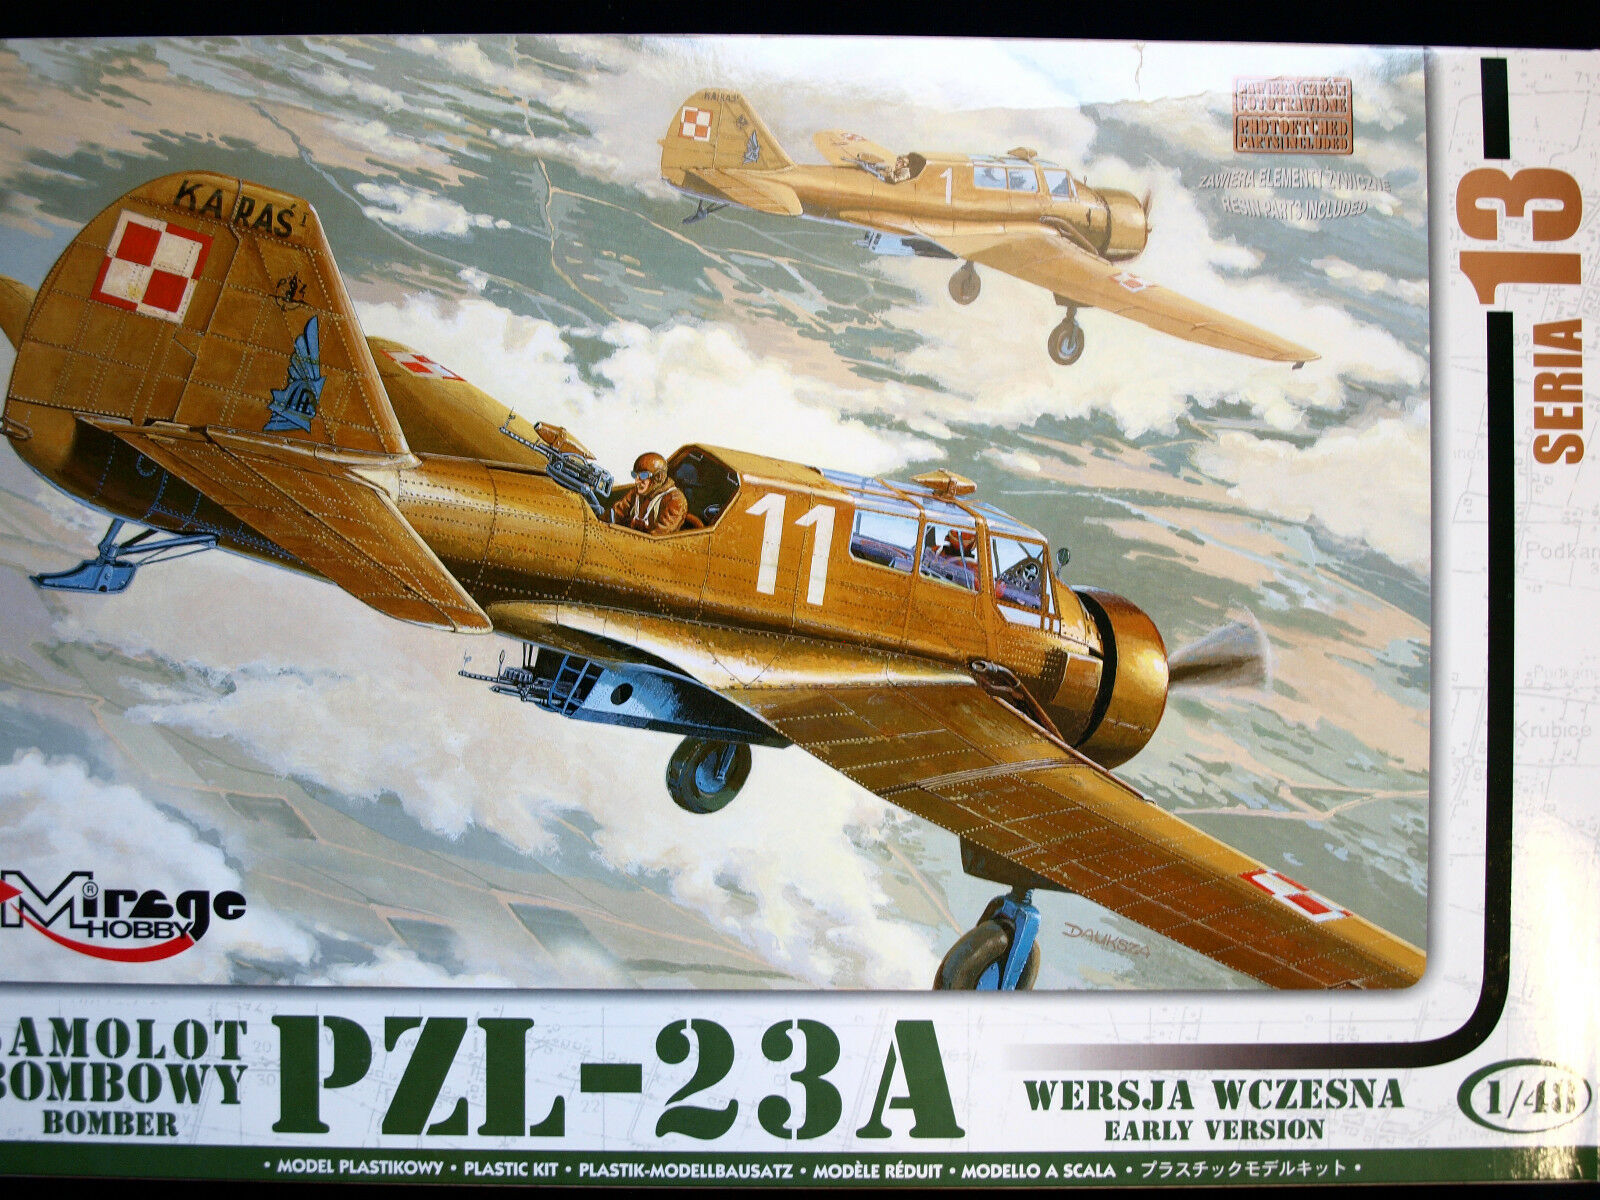 PZL – 23 A BOMBER AIRCRAFT, EARLY VERSION, MIRAGE HOBBY, SCALE 1 48